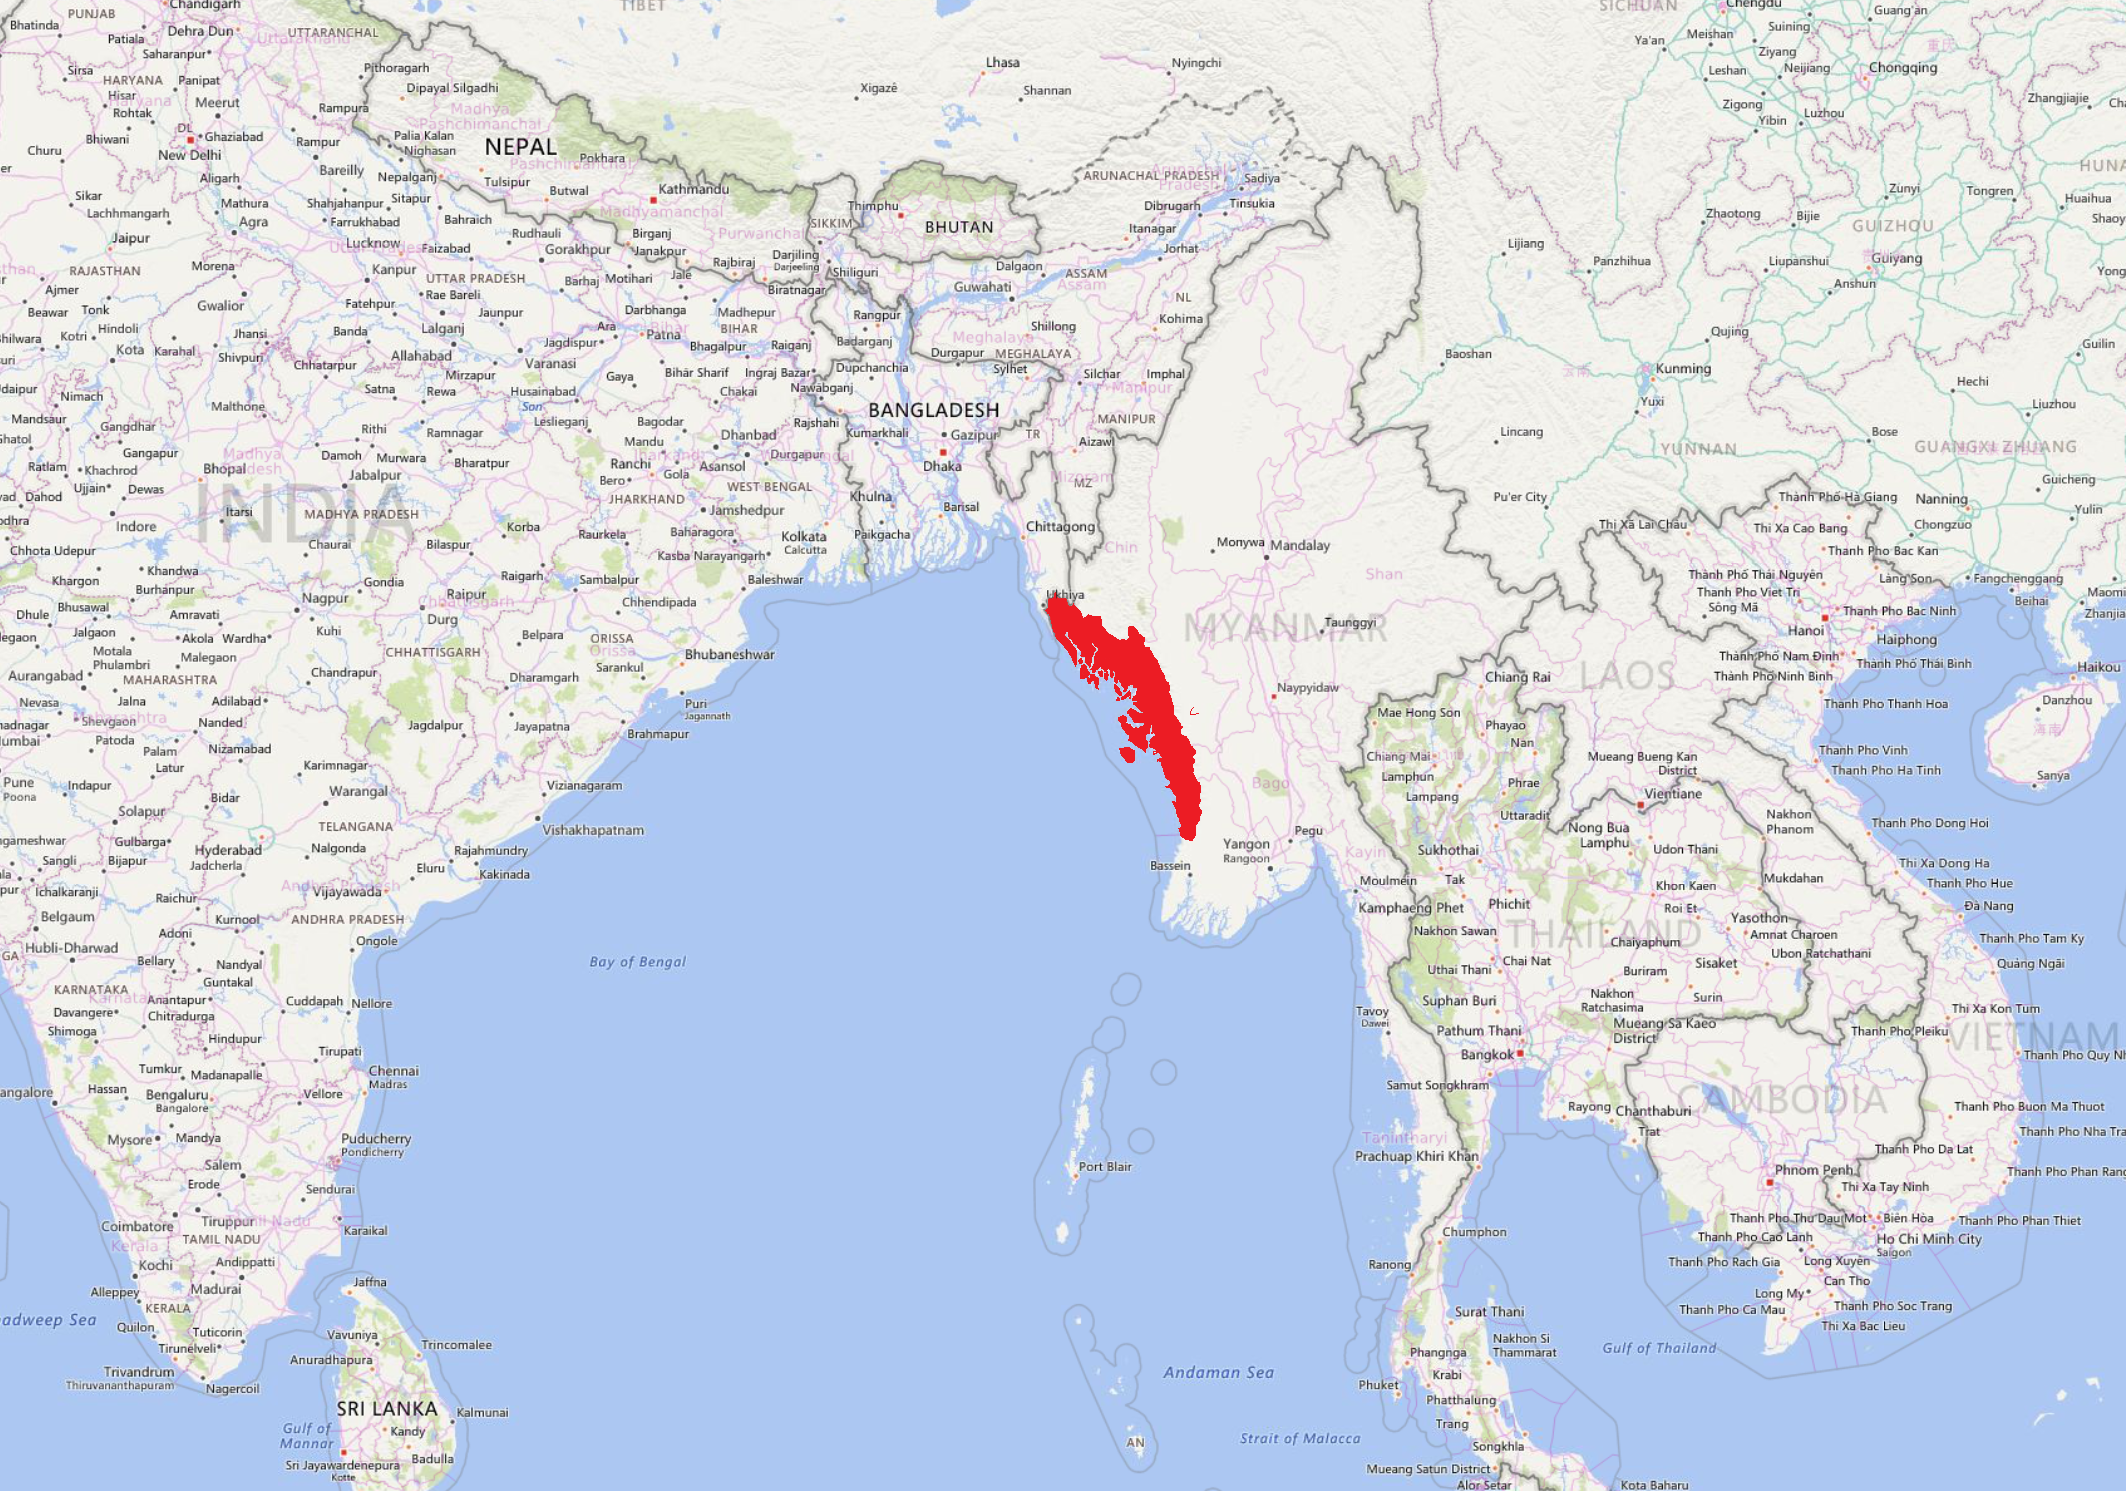 Map of Myanmar and surrounding areas with Rakhine State highlighted in red. Marcus Steiner/CGRE